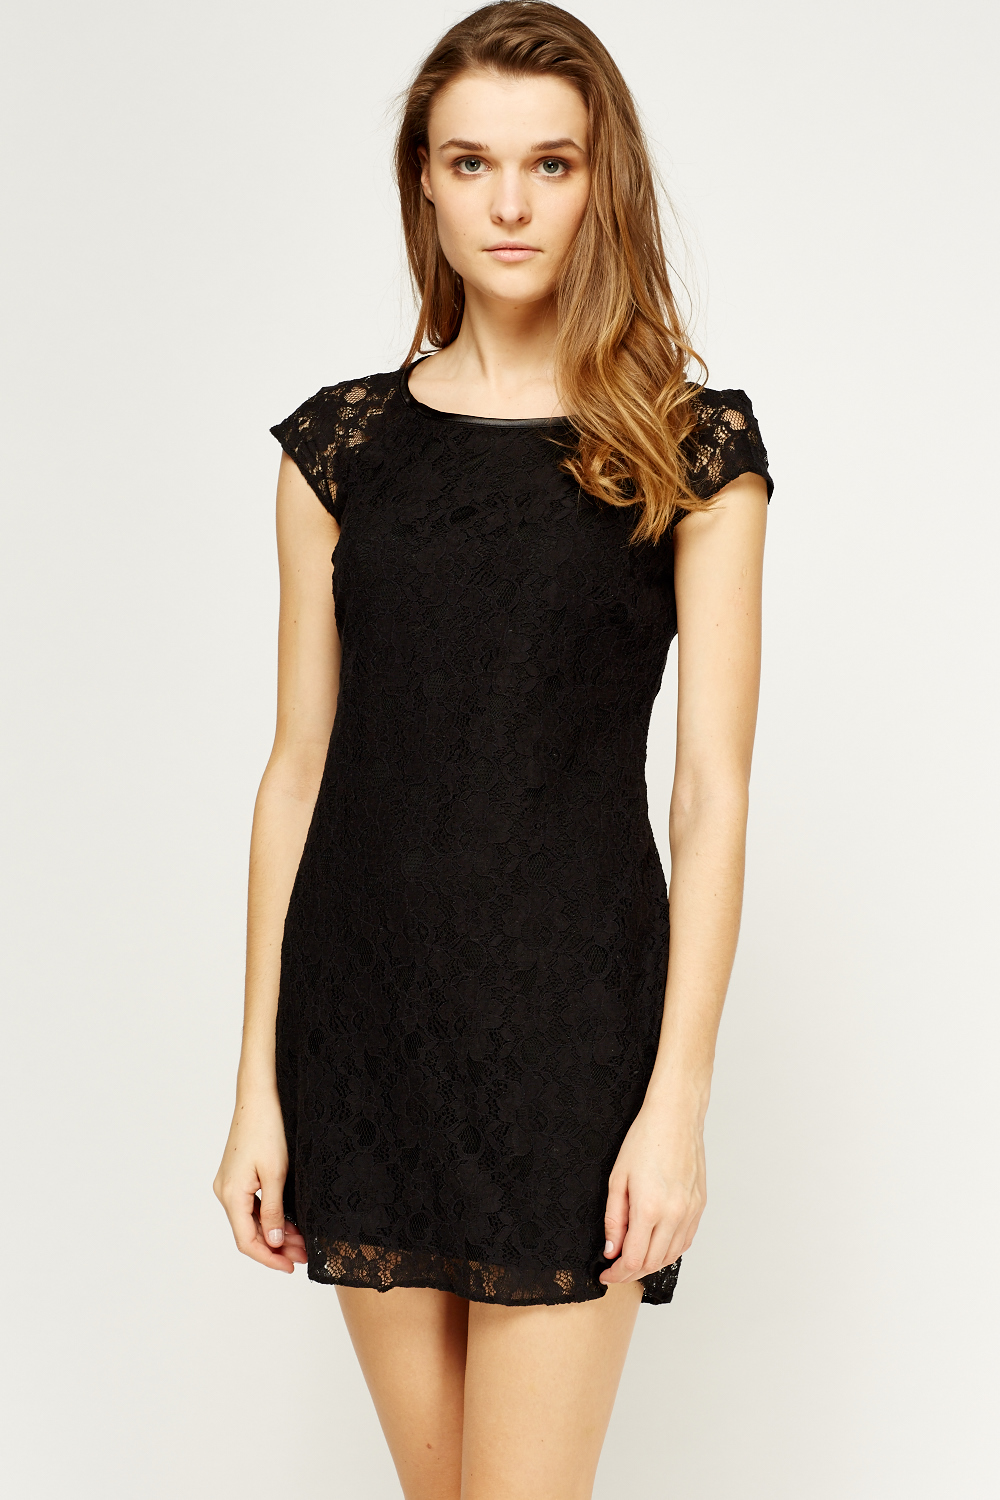 Looking for a Black Lace Dress? Find worthwhile options like a Long Black Lace Dress, Short Black Lace Dress and more at Macy's.